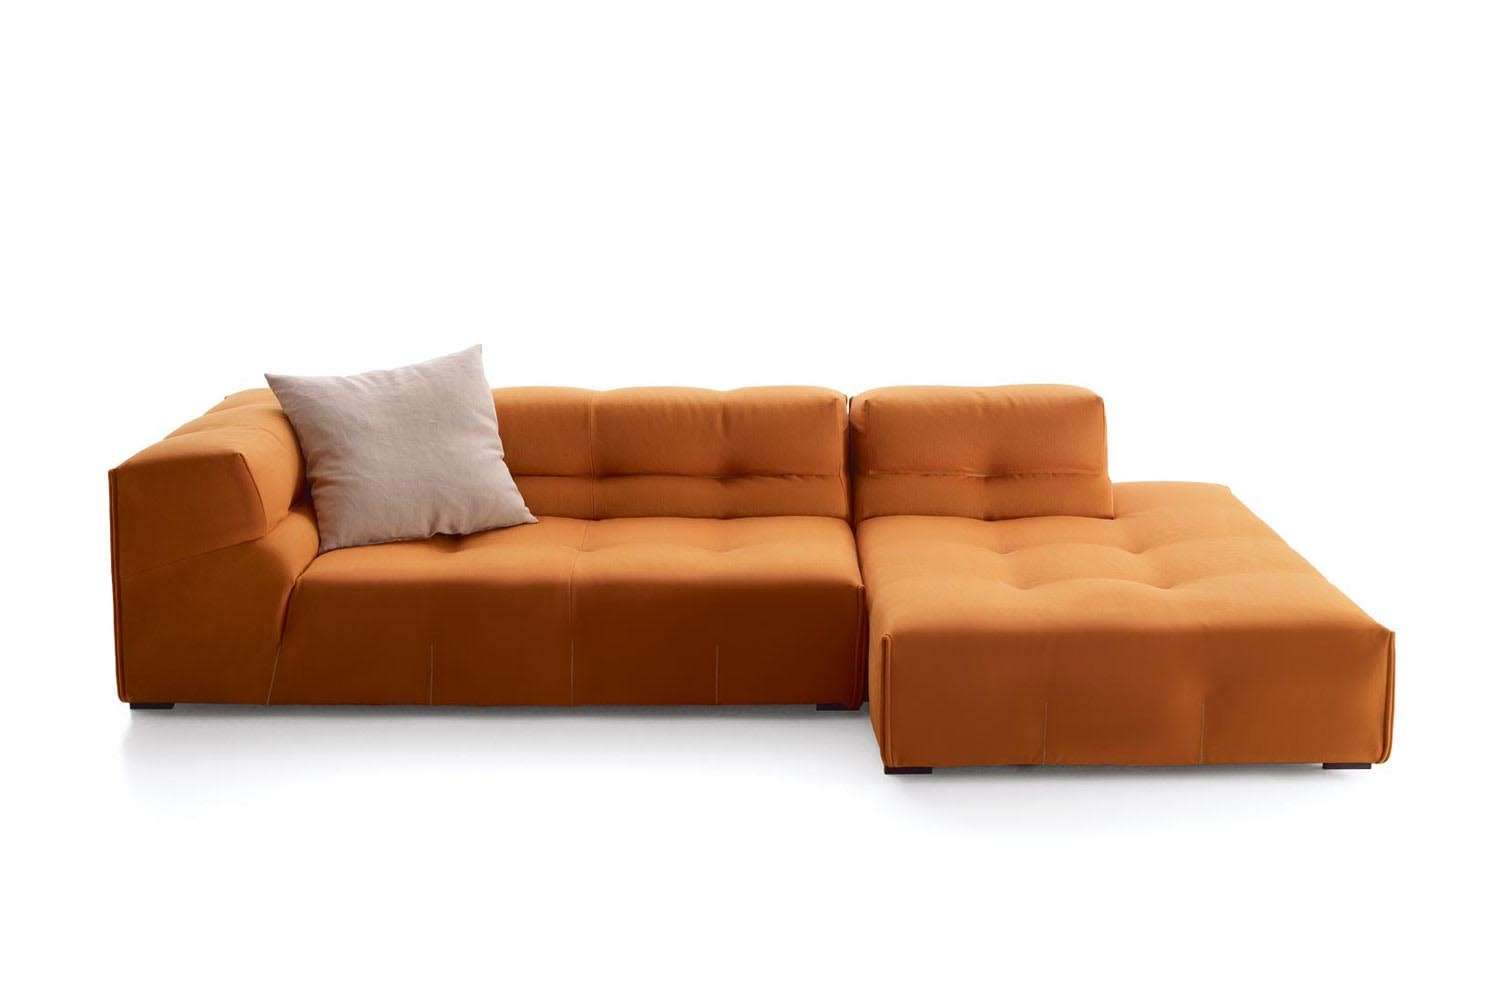 Tufty-Too Sofa by Patricia Urquiola for B&B Italia